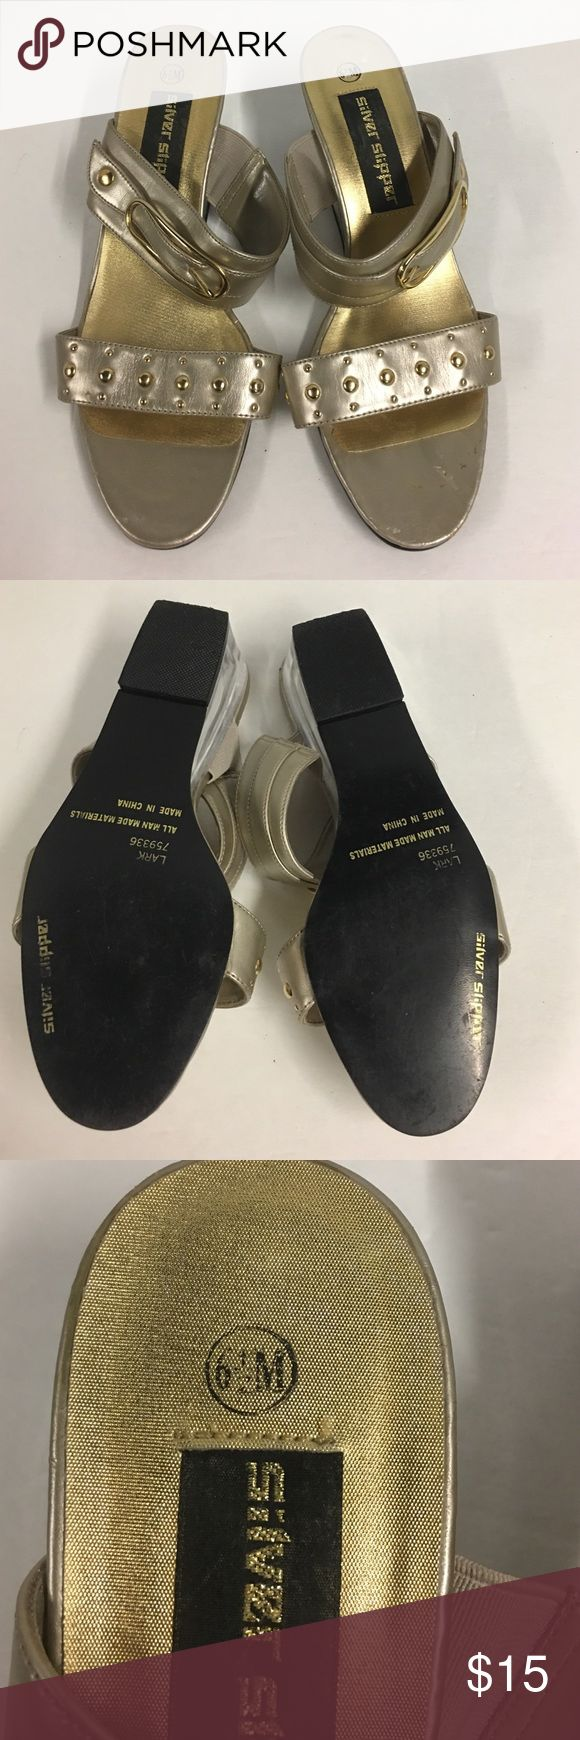 👠Silver Slipper Slide Sandal 6.5M 👠Silver Slipper Slide Sandal 6.5M. Pretty gold with clear chunky heel. In great condition! Silver Slipper Shoes Sandals